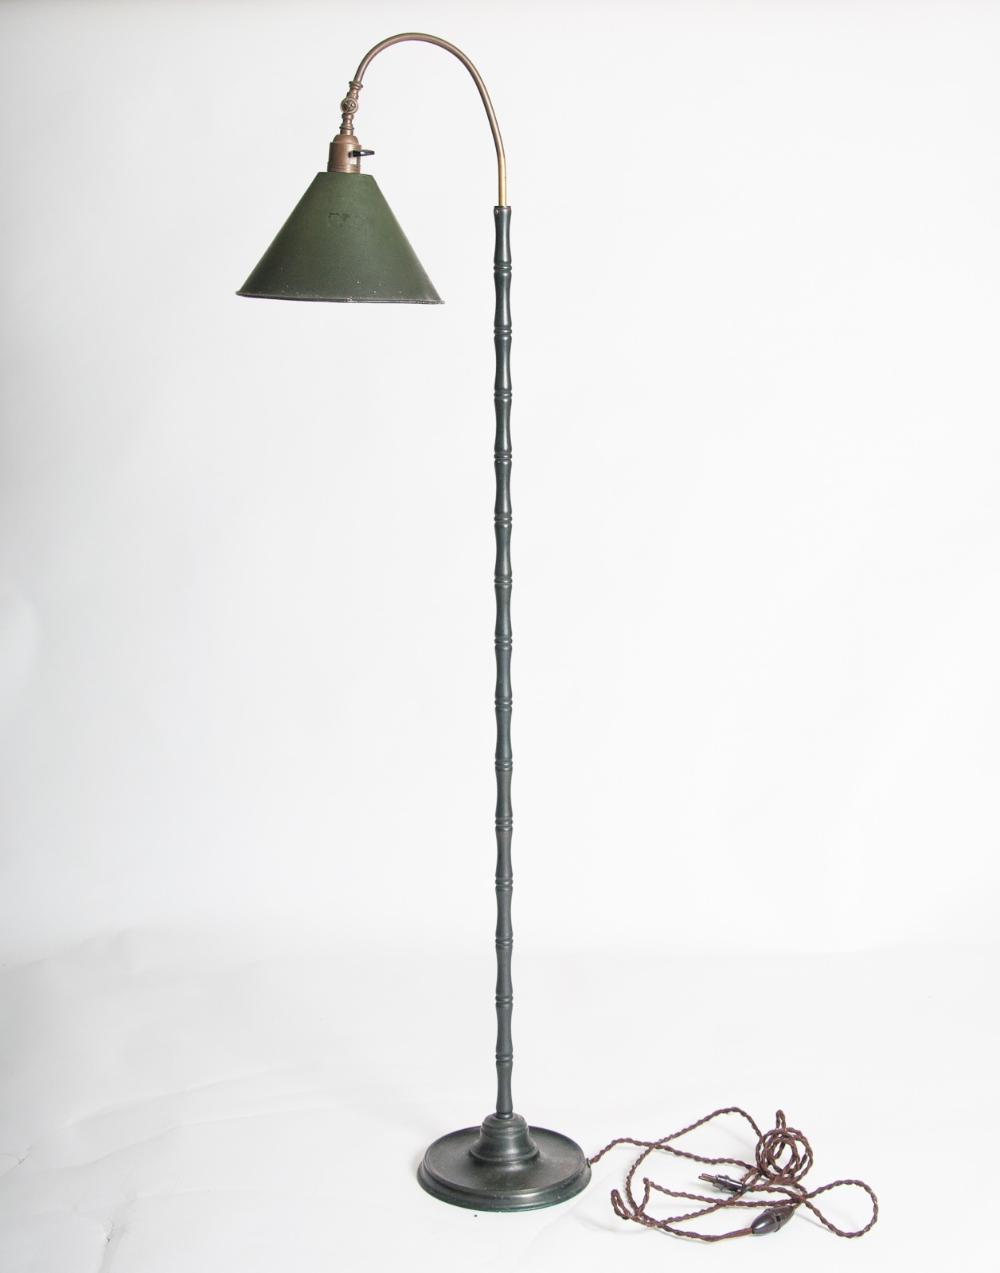 Maison Bagues Attributed 1940s Floor Lamp Decorative Collective Floor Lamp Bamboo Floor Lamp Lamp